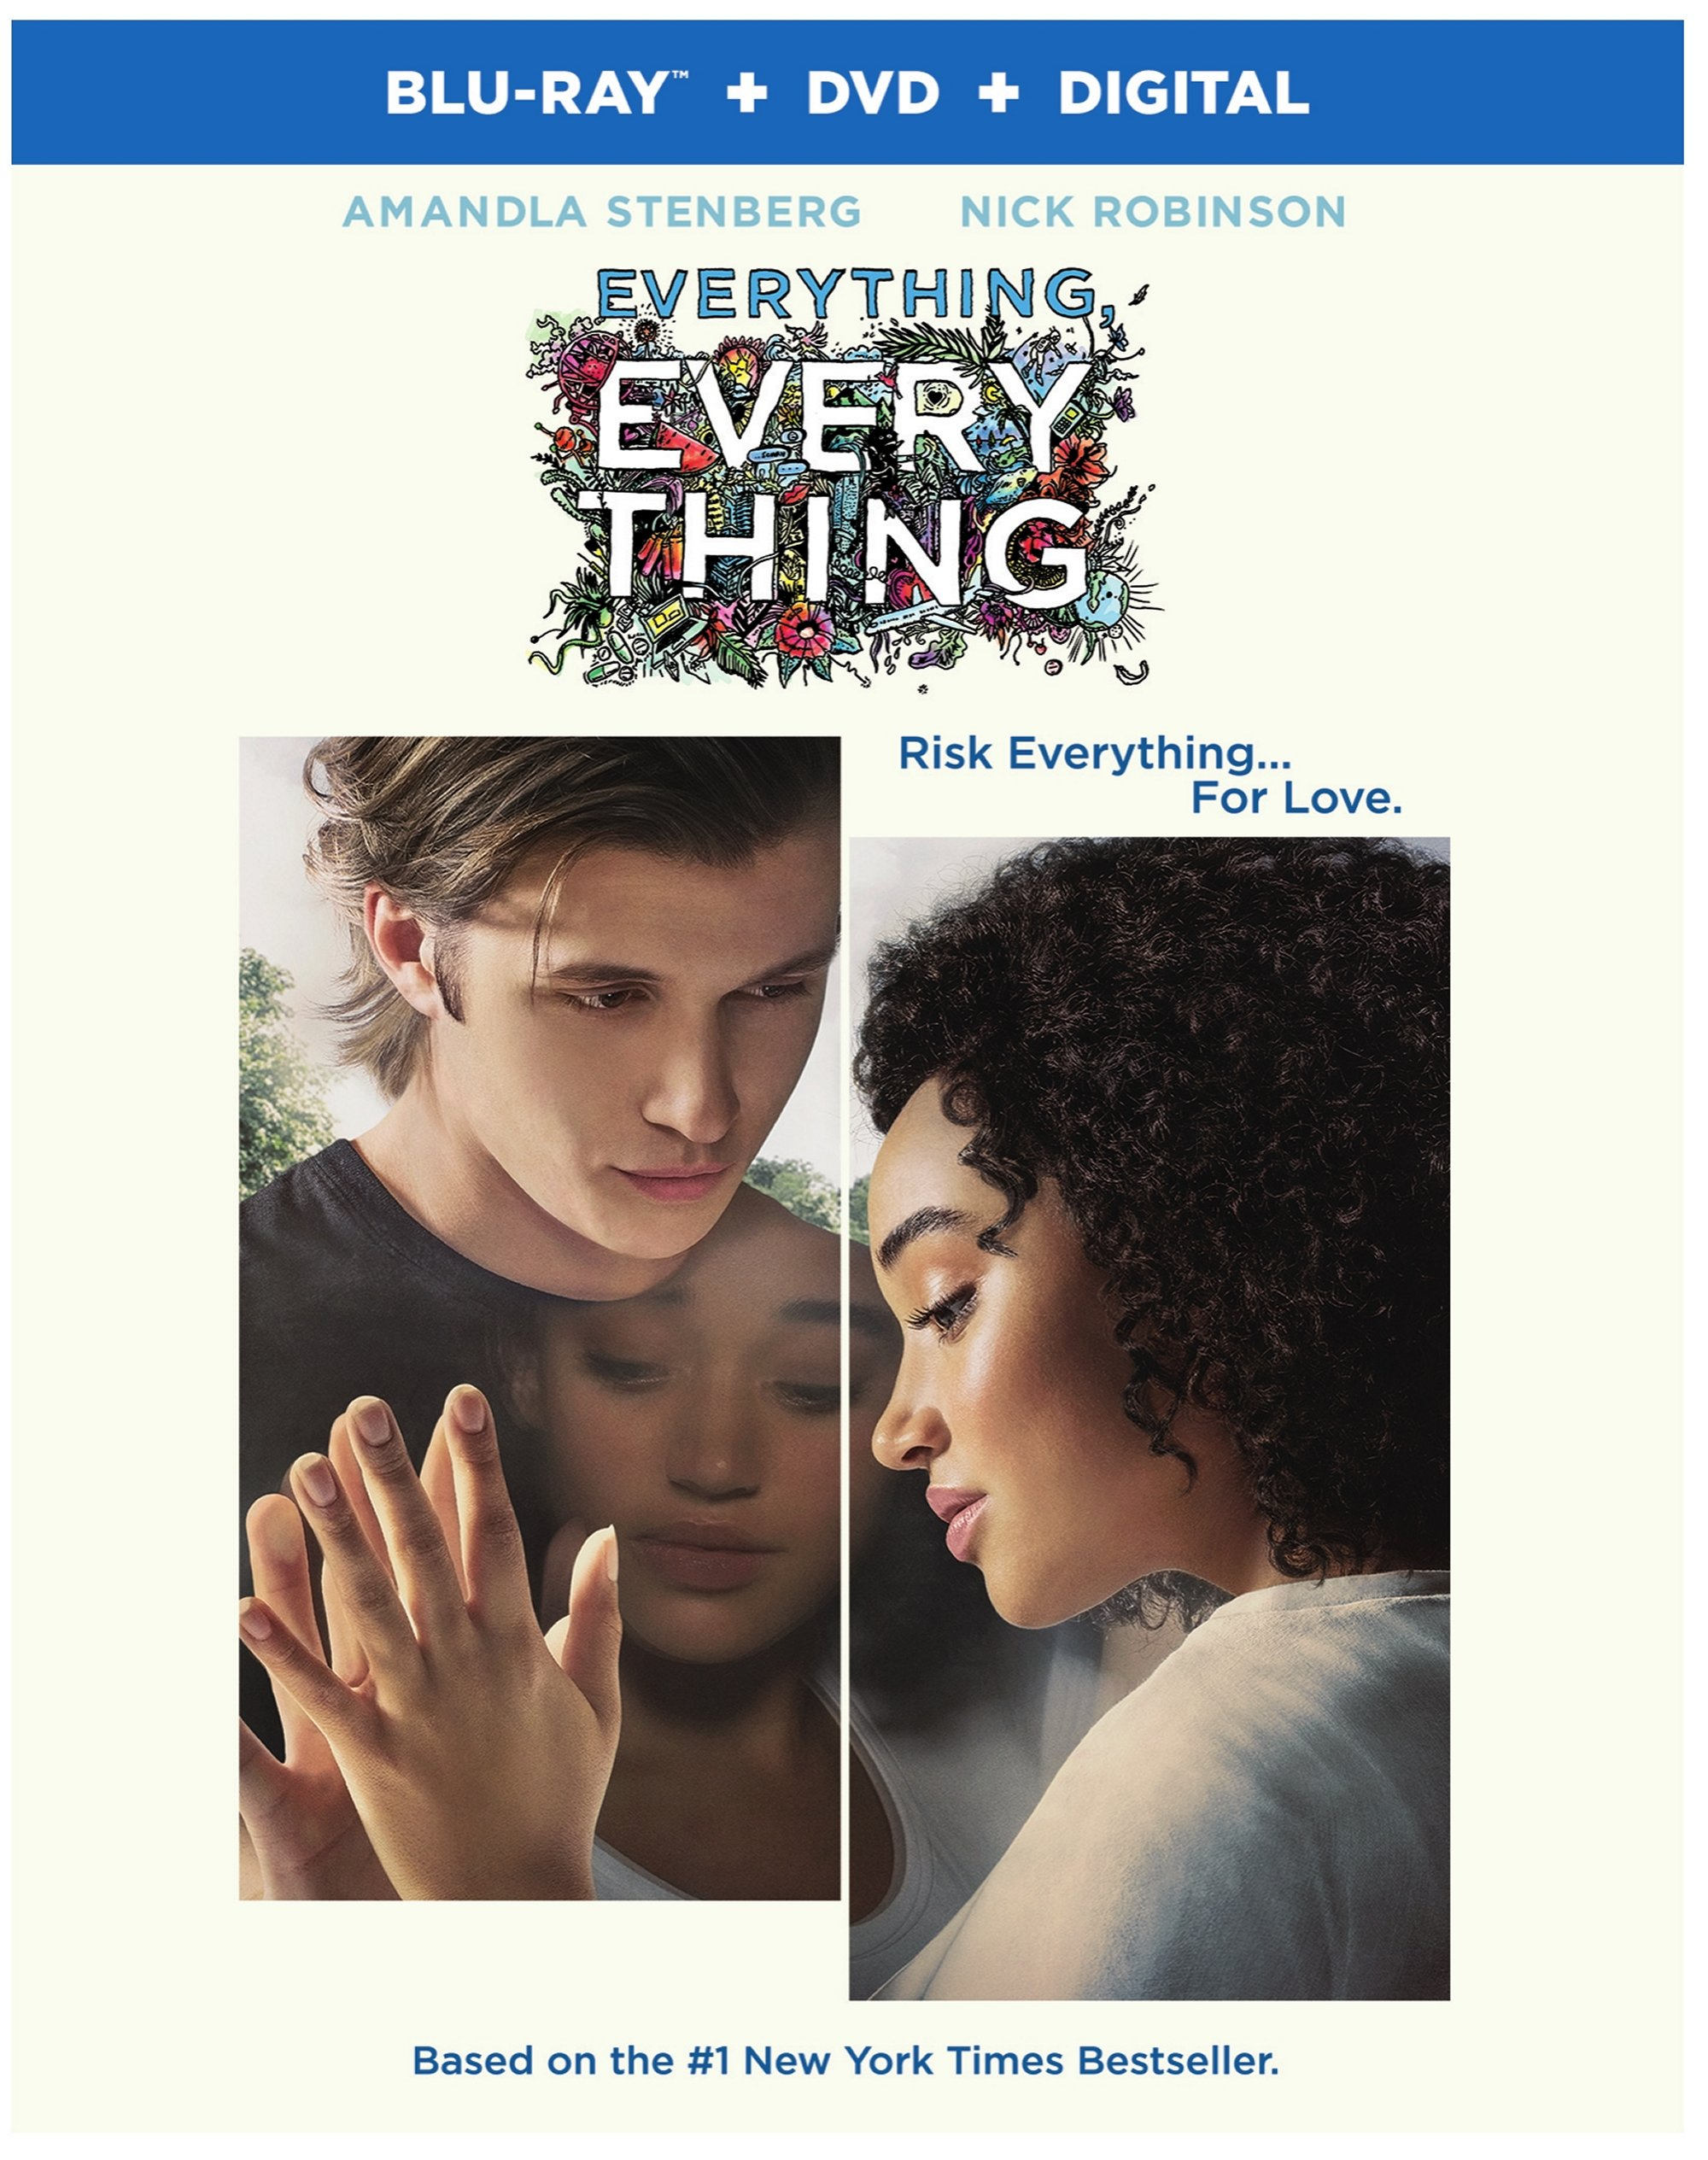 EVERYTHING, EVERYTHING Blu-ray